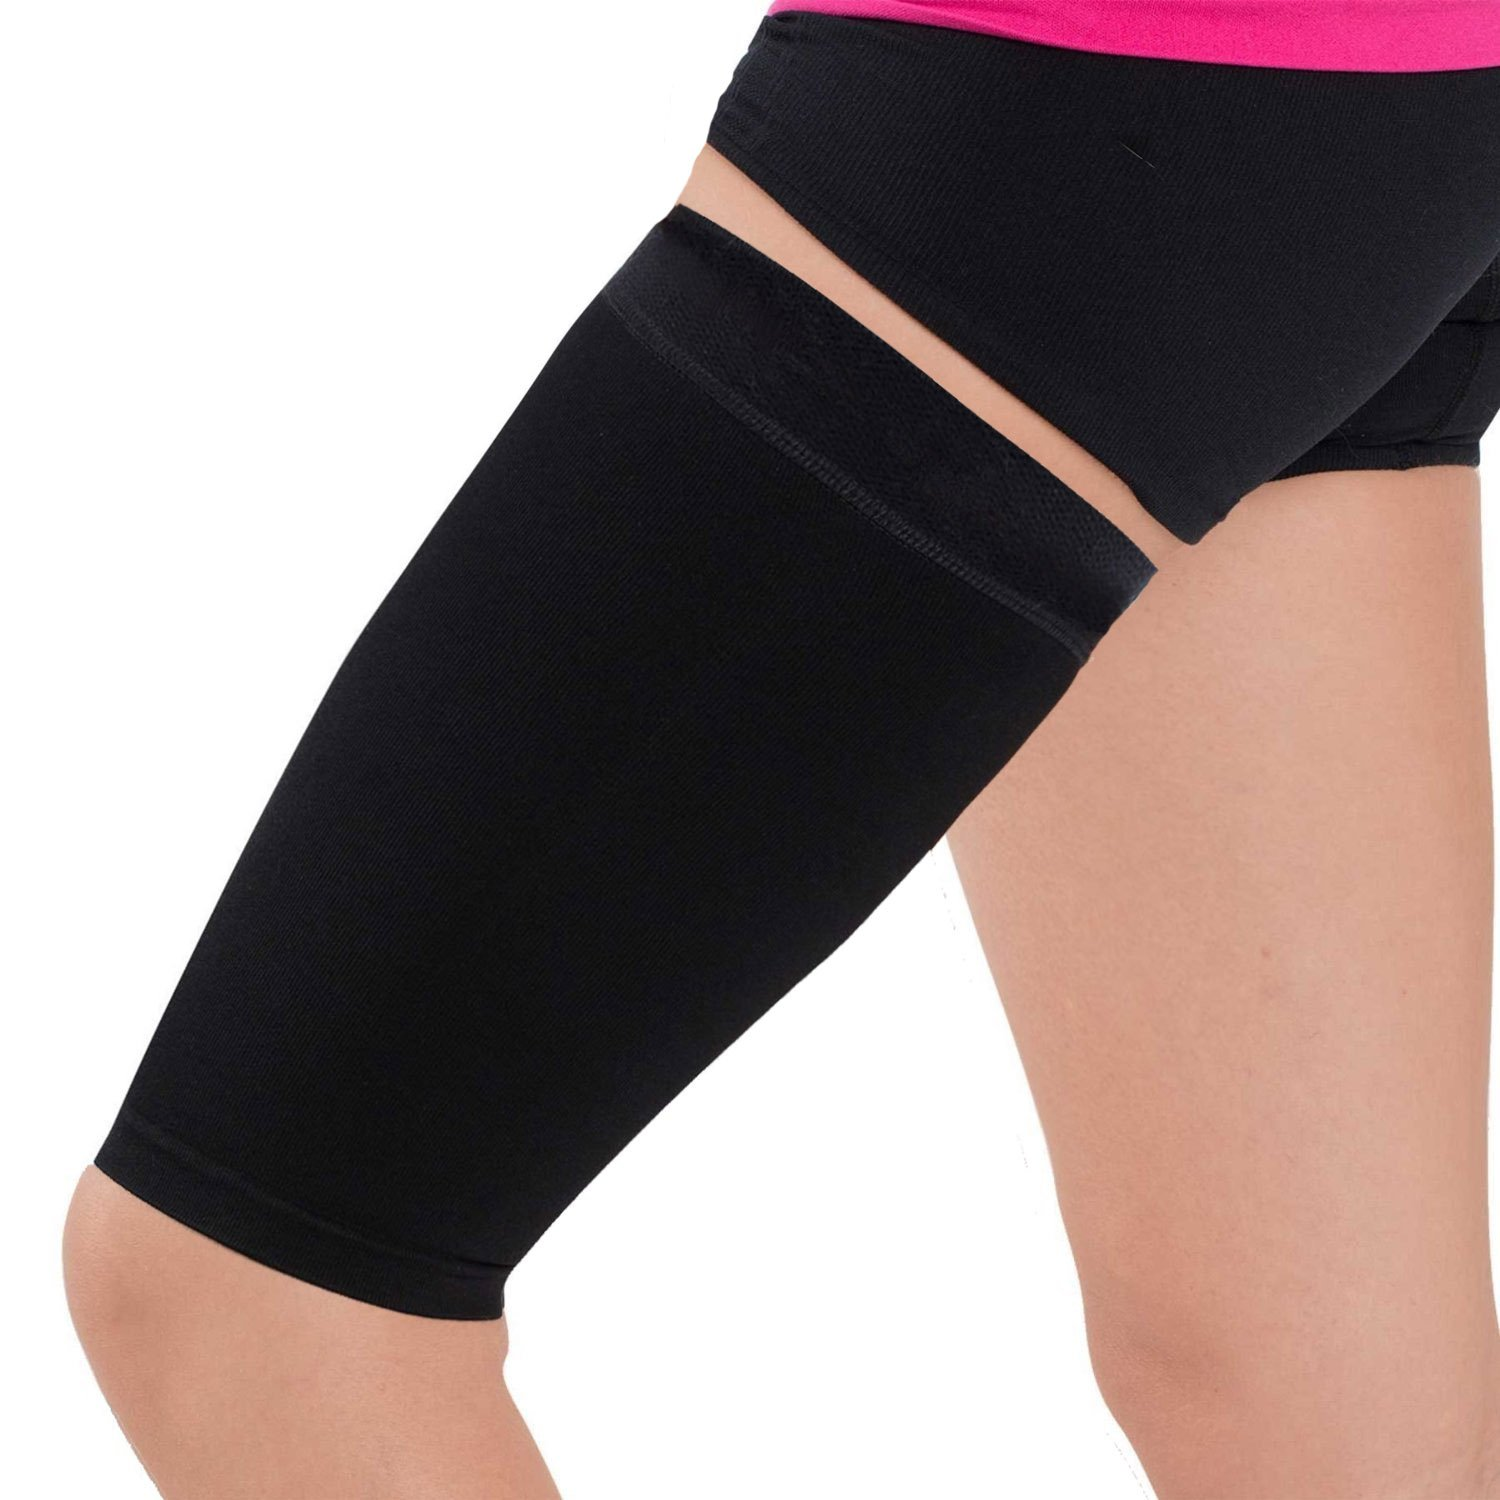 Thigh Compression Sleeve - Hamstring, Quadriceps, Groin Pull and Strains - Running, Basketball, Tennis, Soccer, Sports - Athletic Thigh Support (Single) (Black, S) by Pure Compression